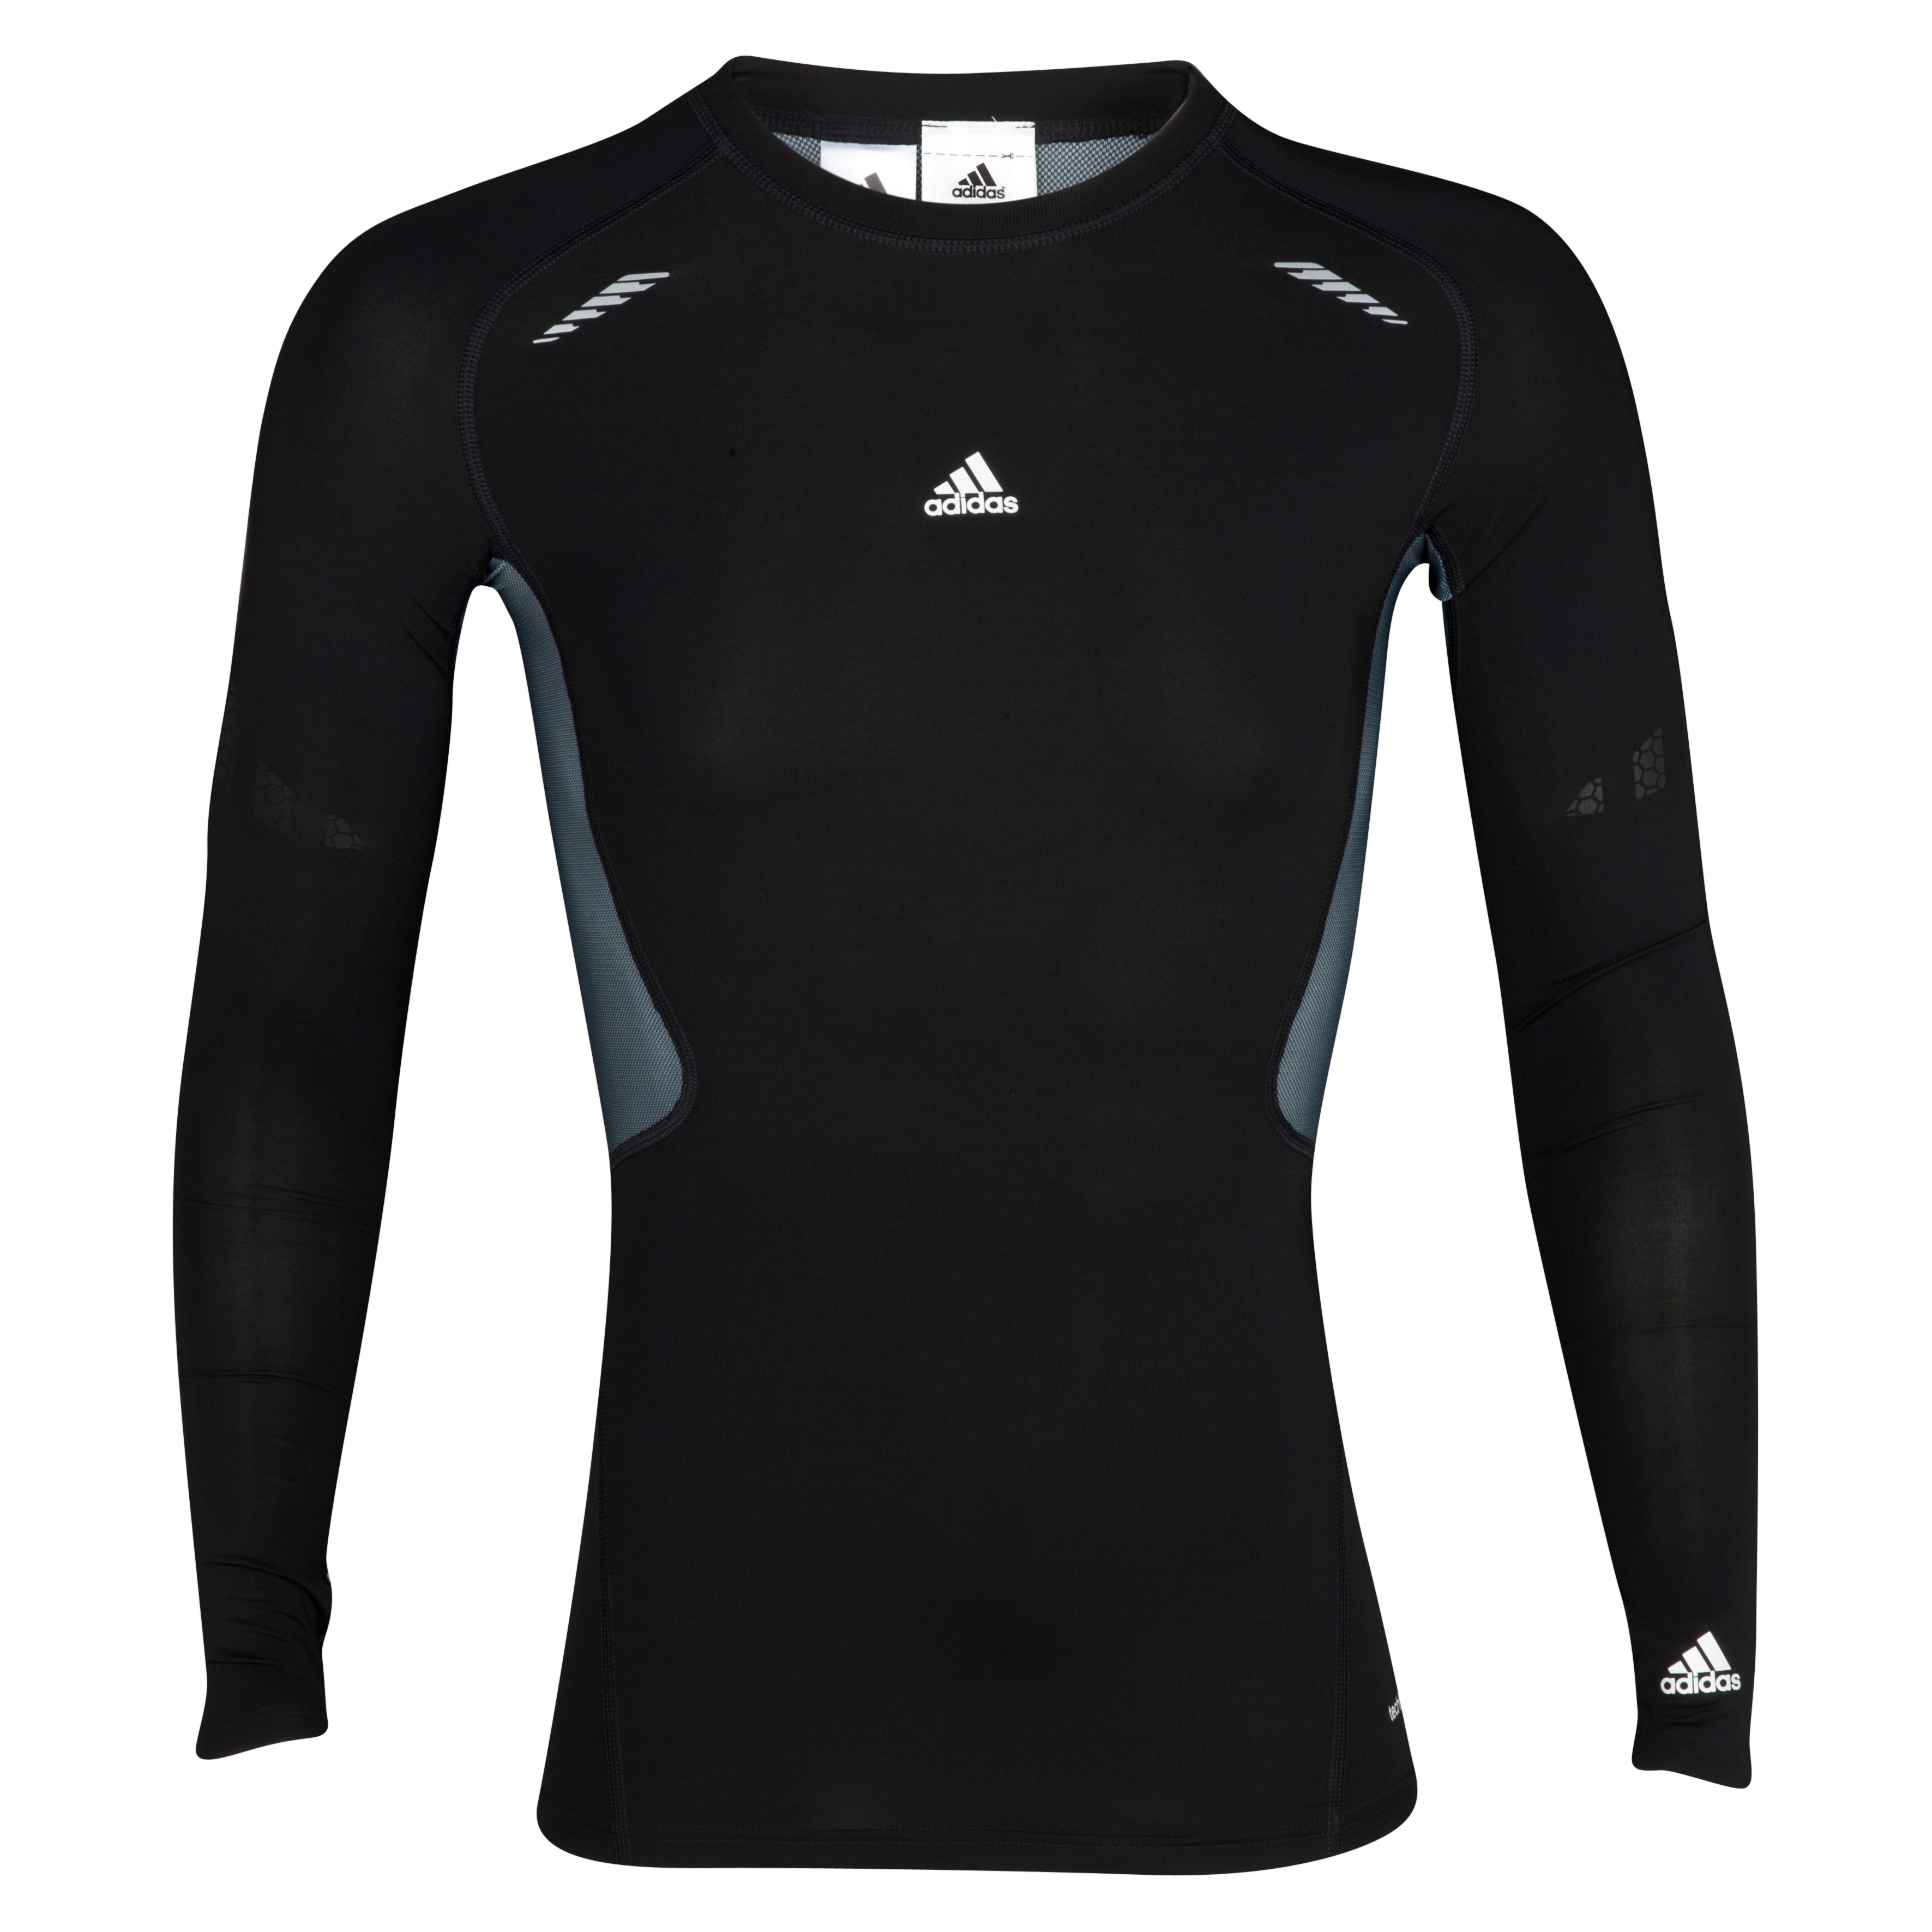 Adidas TechFit Preperation Top - Long Sleeve - Black